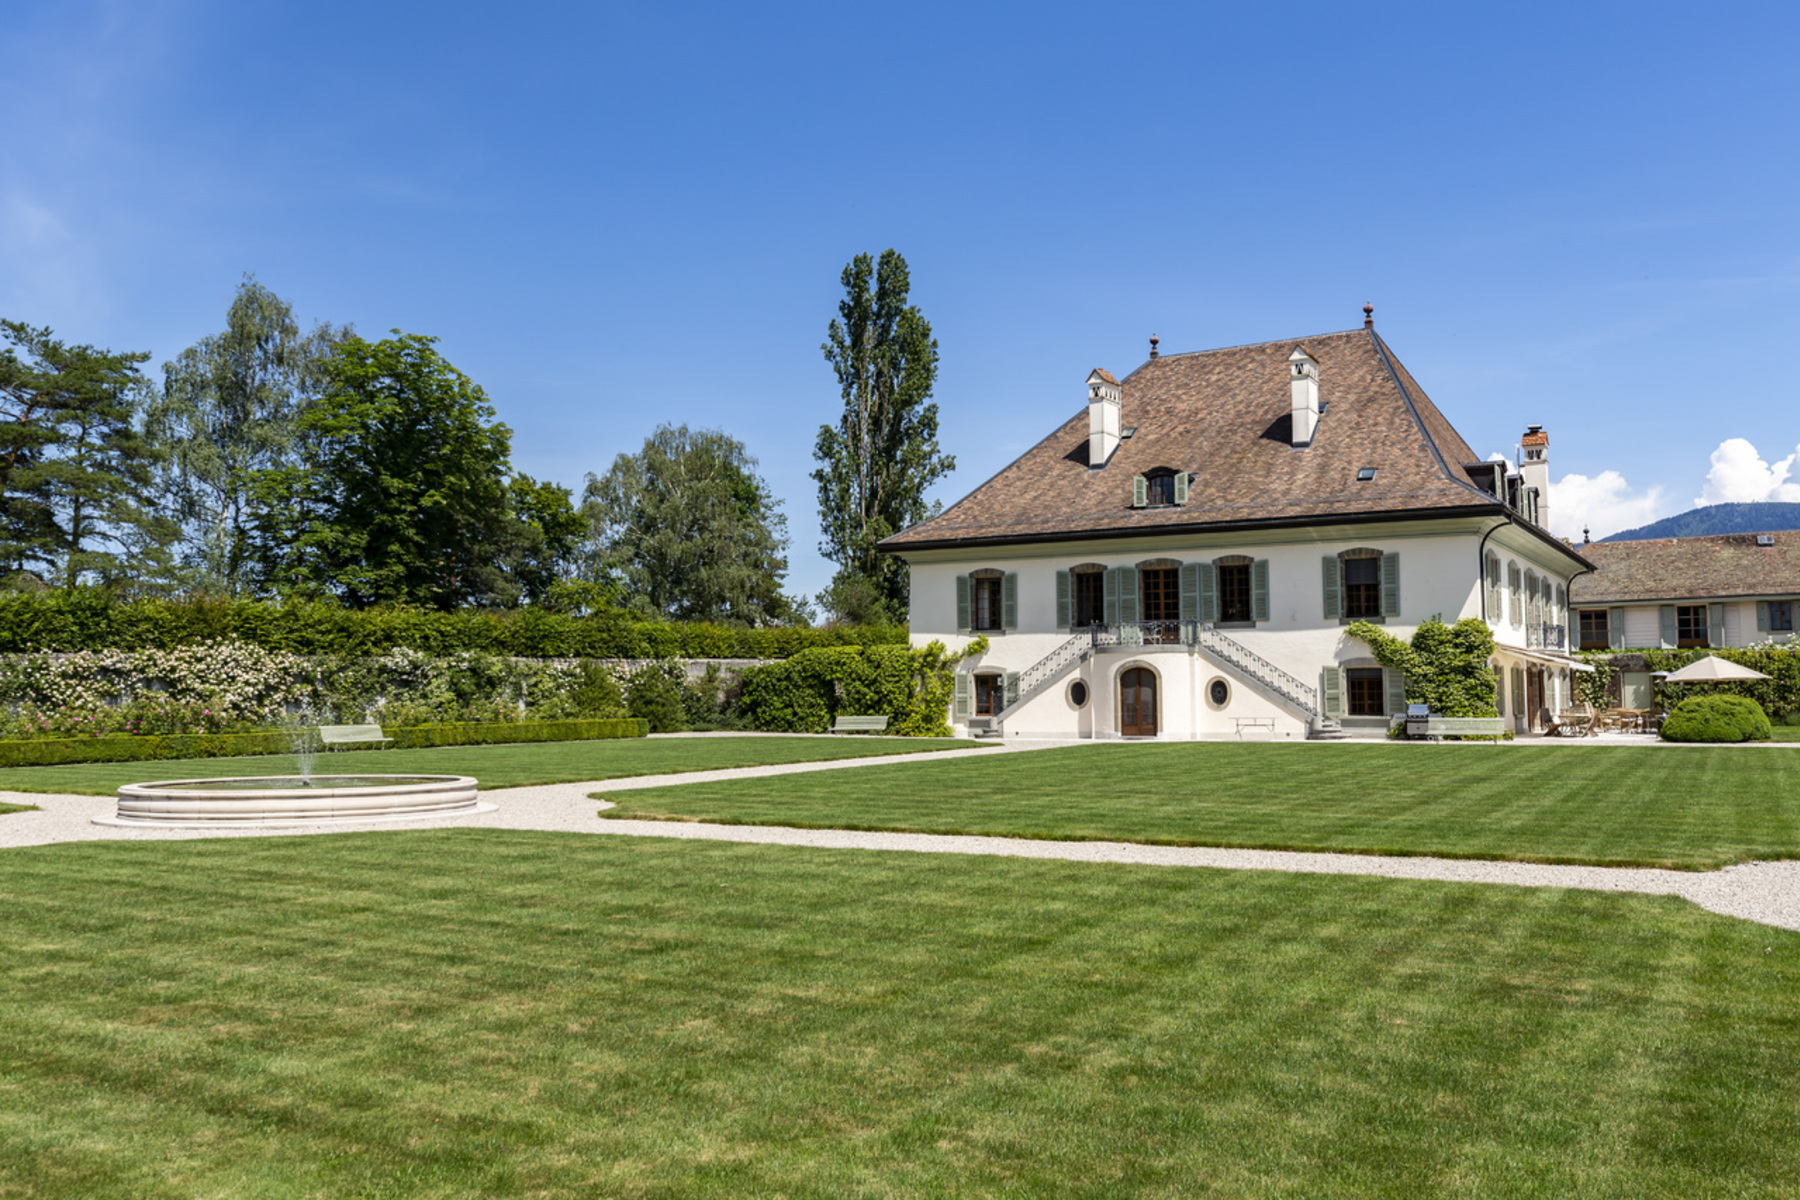 Additional photo for property listing at Royal Estate Merlinge Castle Gy Autres Geneve, Genève 1252 Suisse